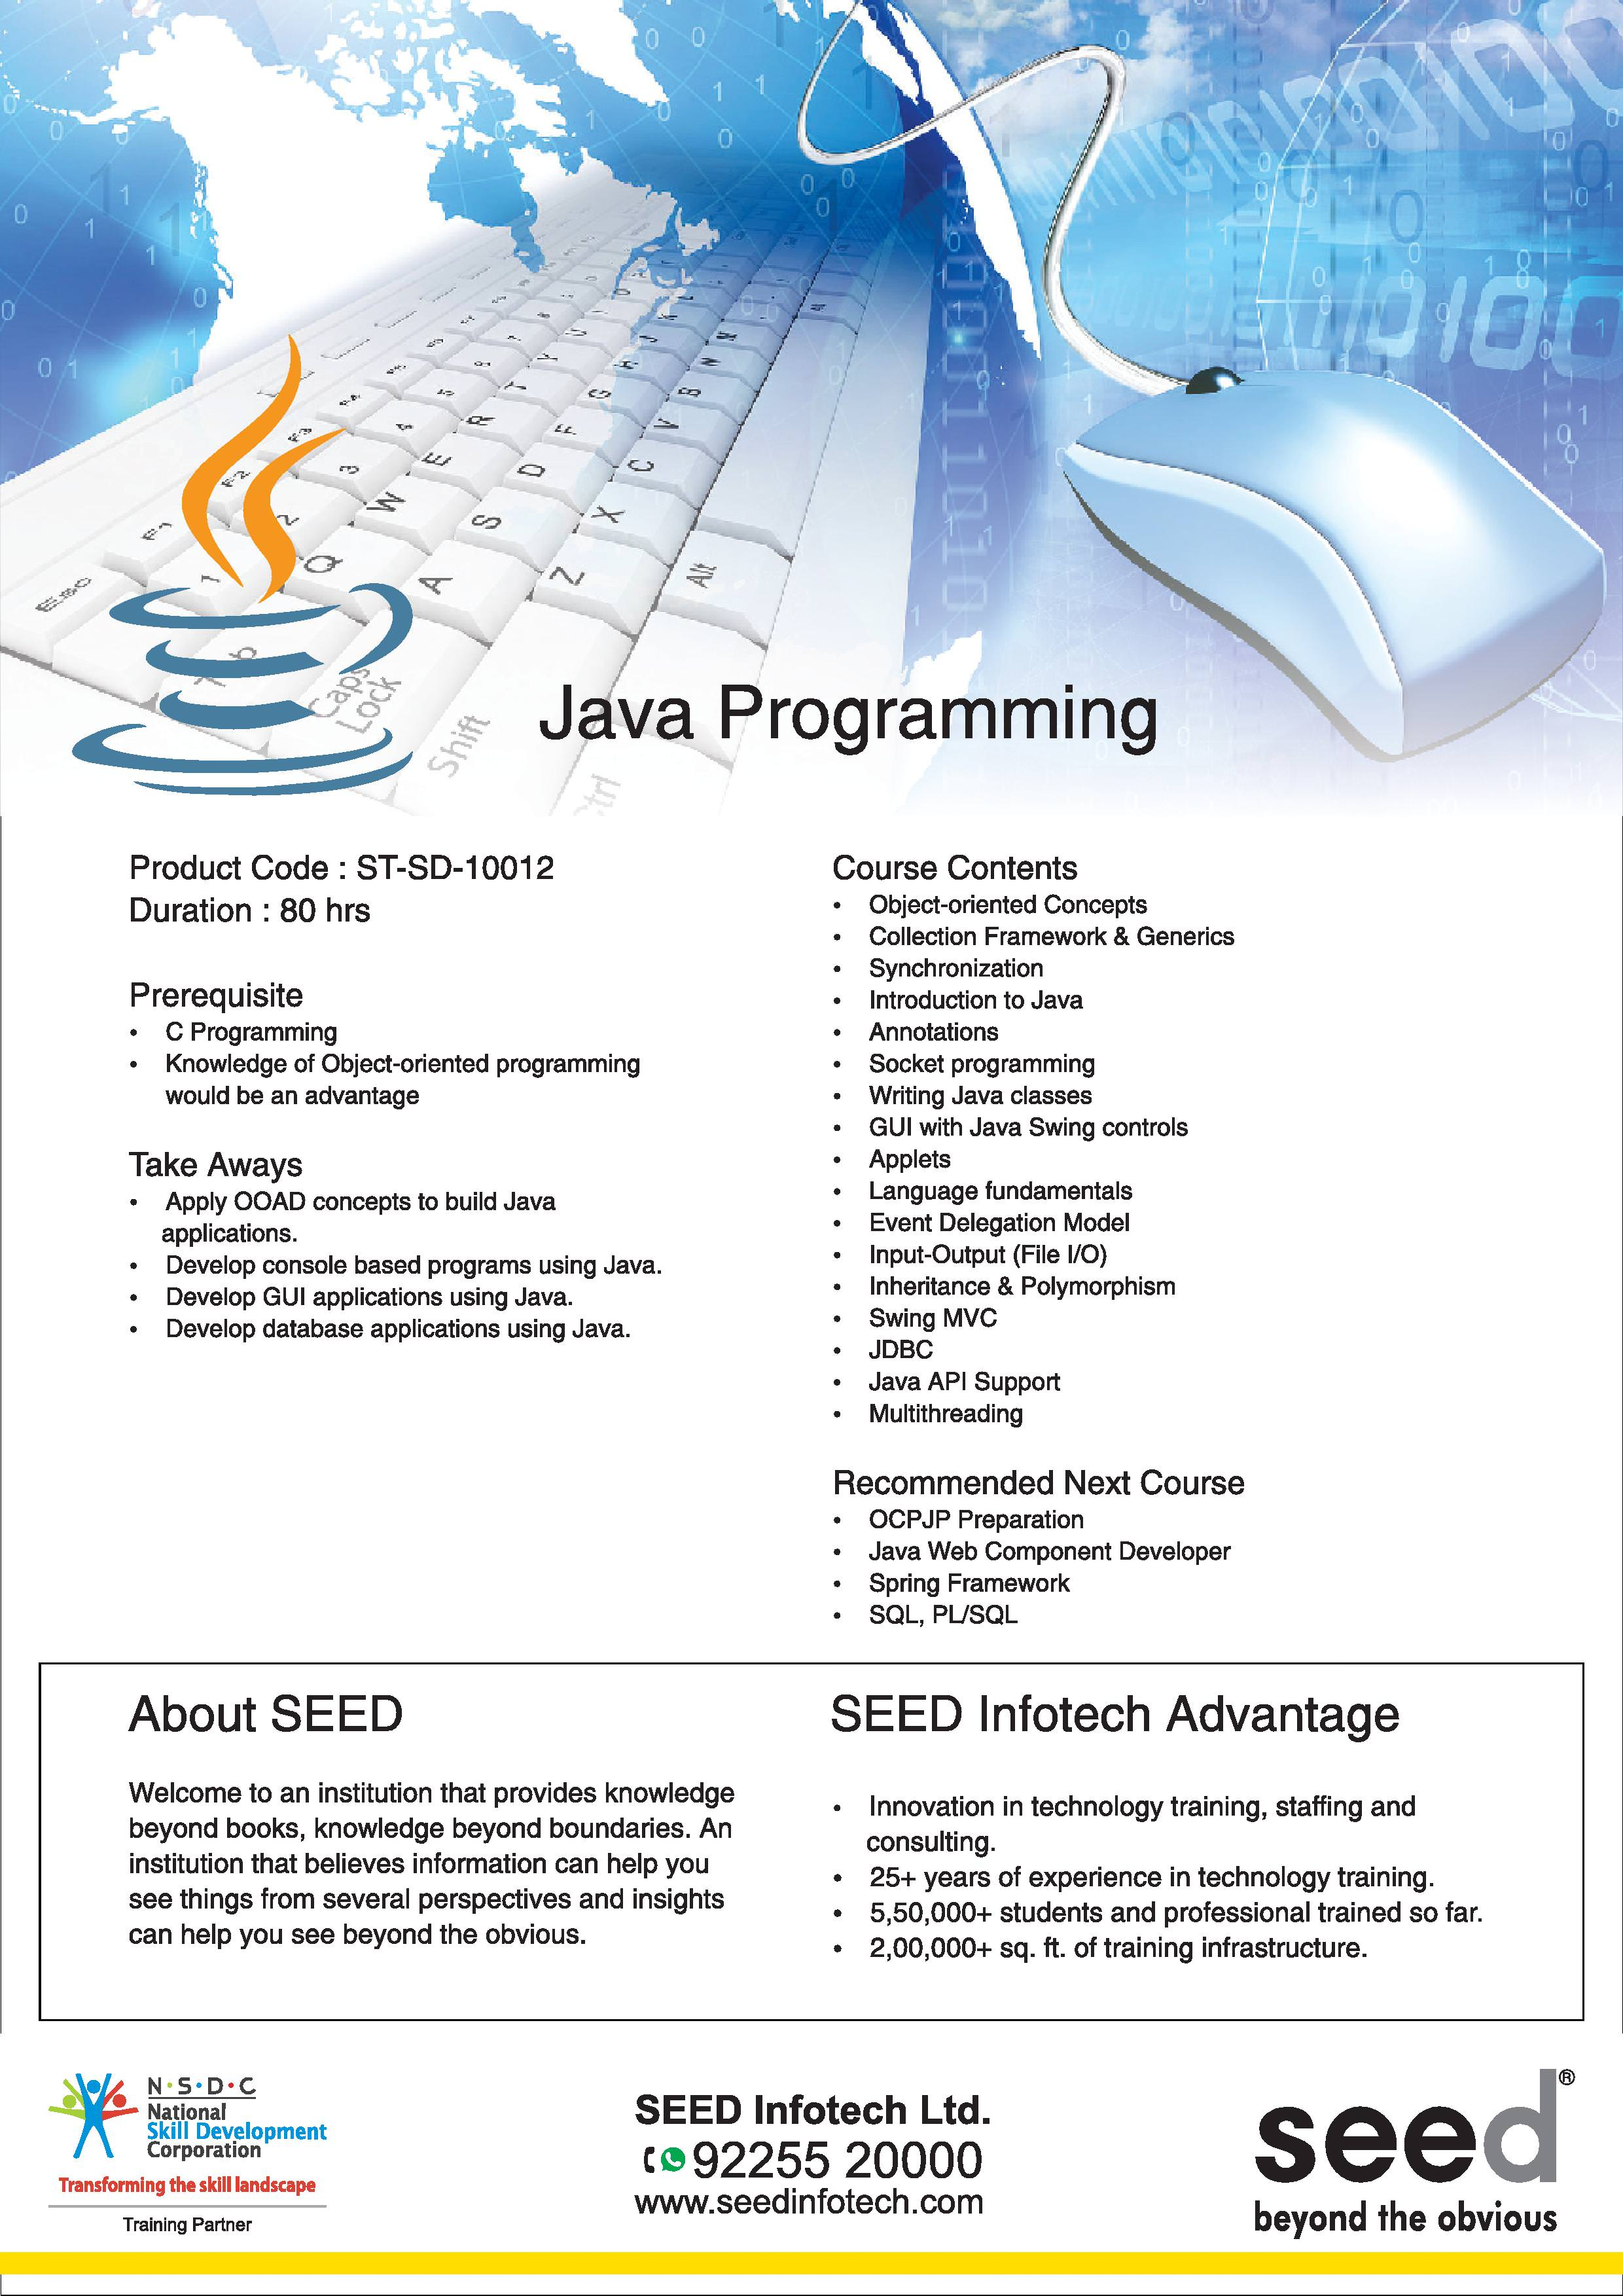 Java Technology | Java Programming Language Course by SEED